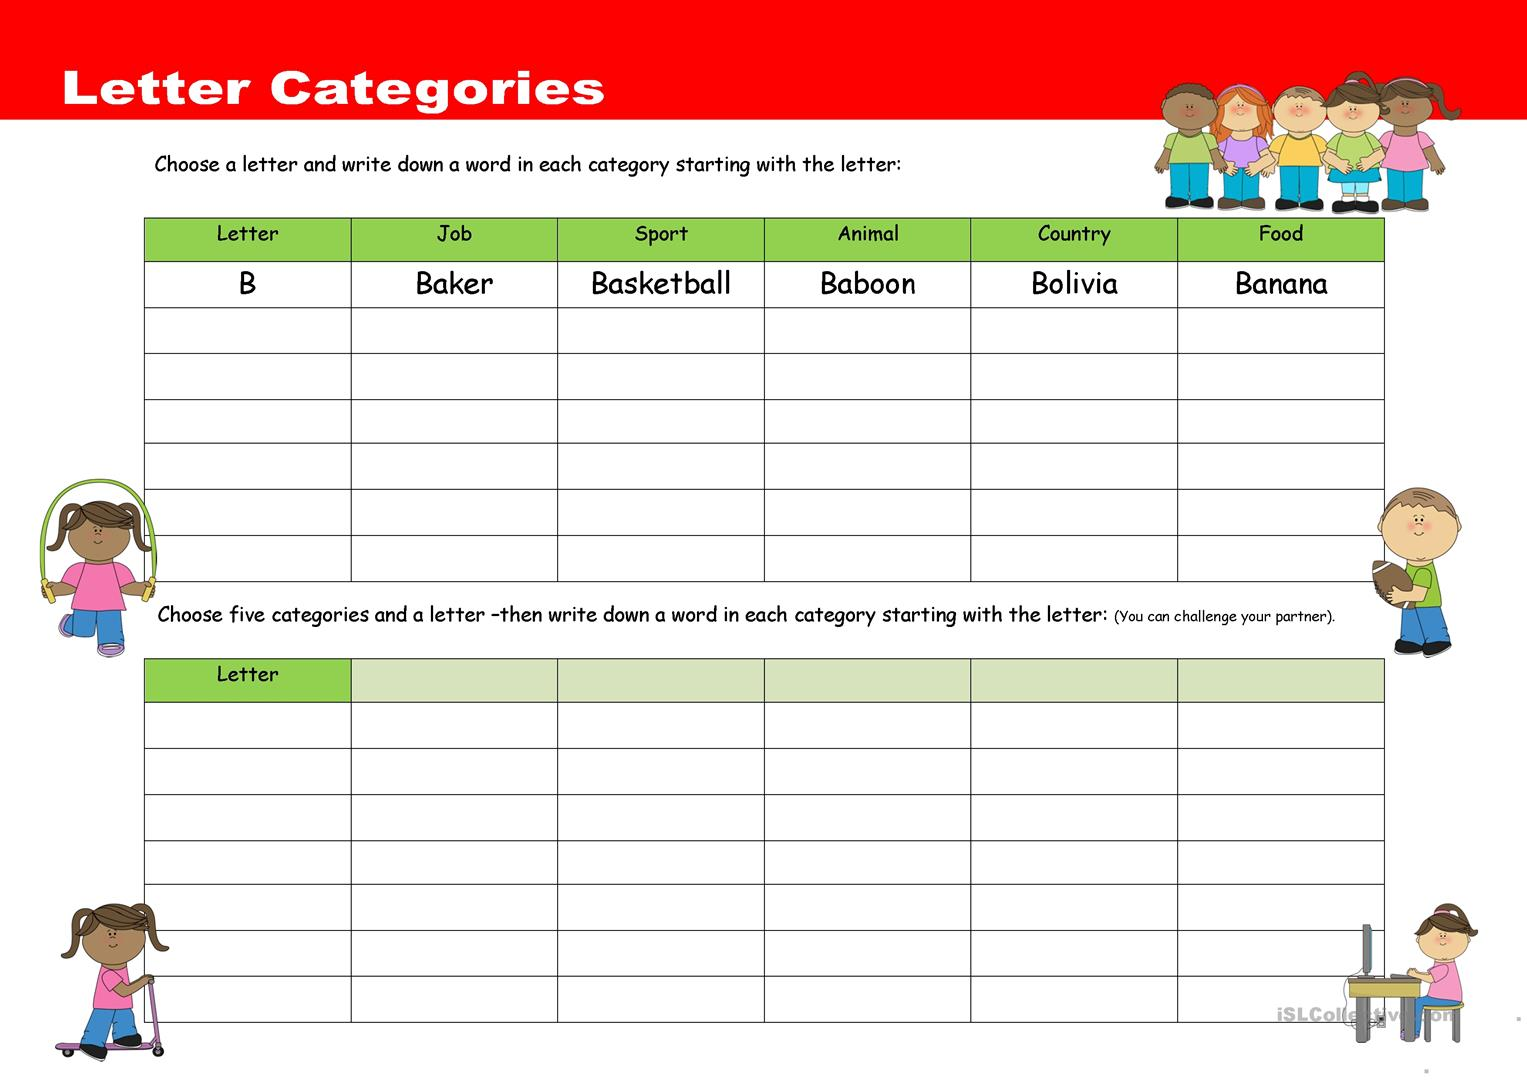 Letter Categories Worksheet